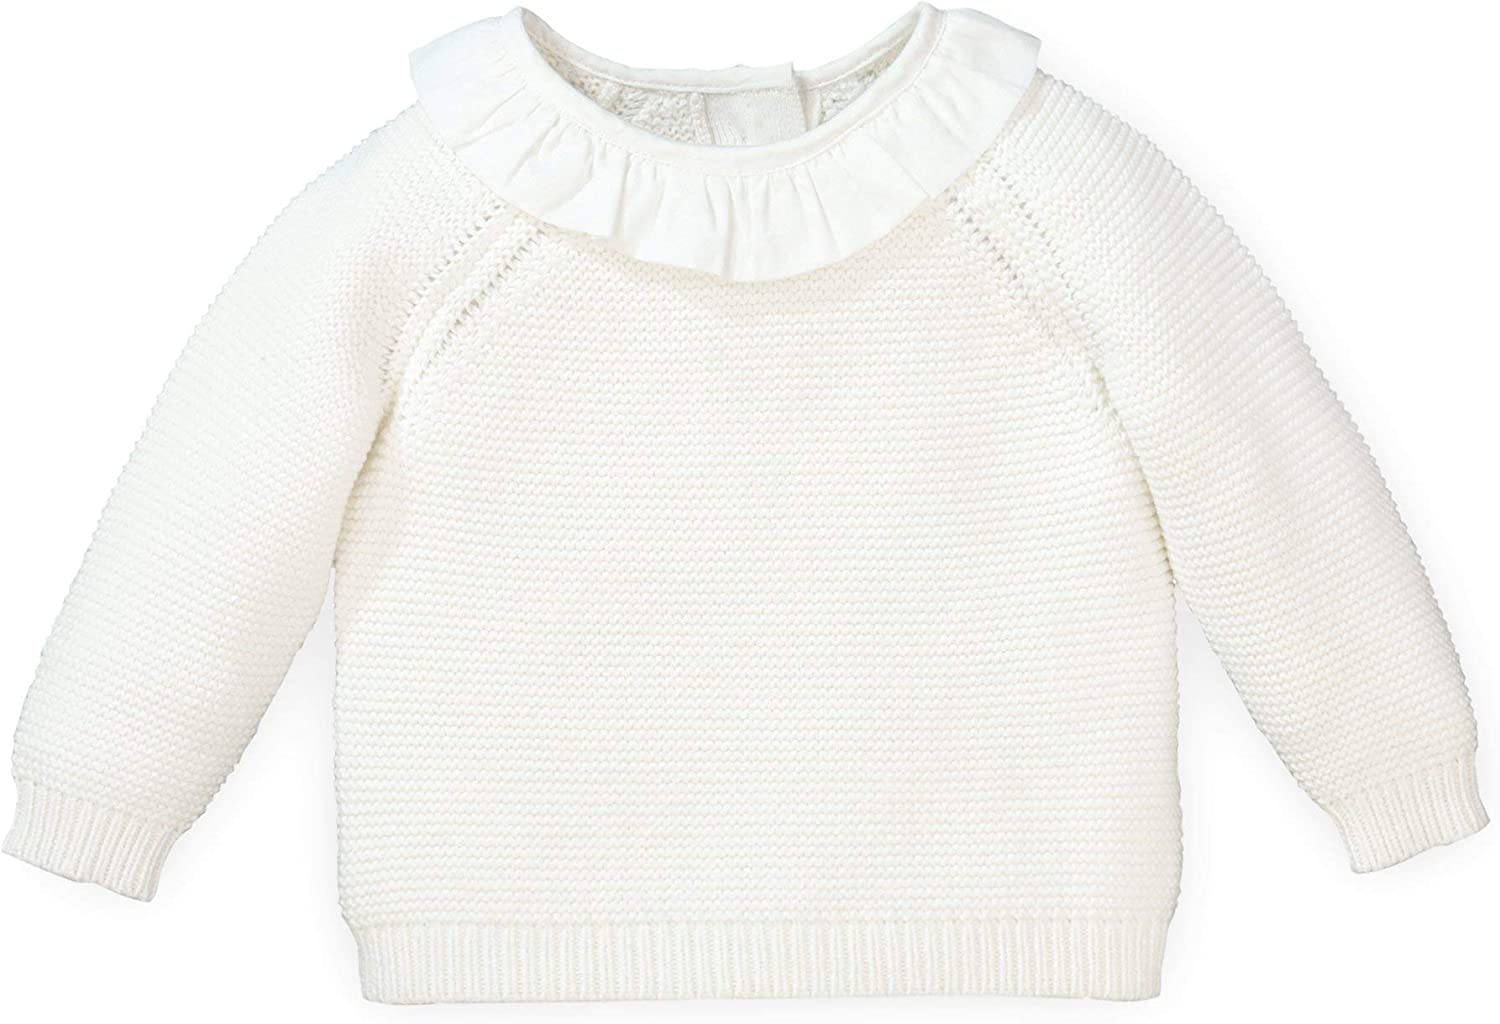 Bloomer Hope /& Henry Layette Long Sleeve Sweater and Bonnet 3-Piece Set